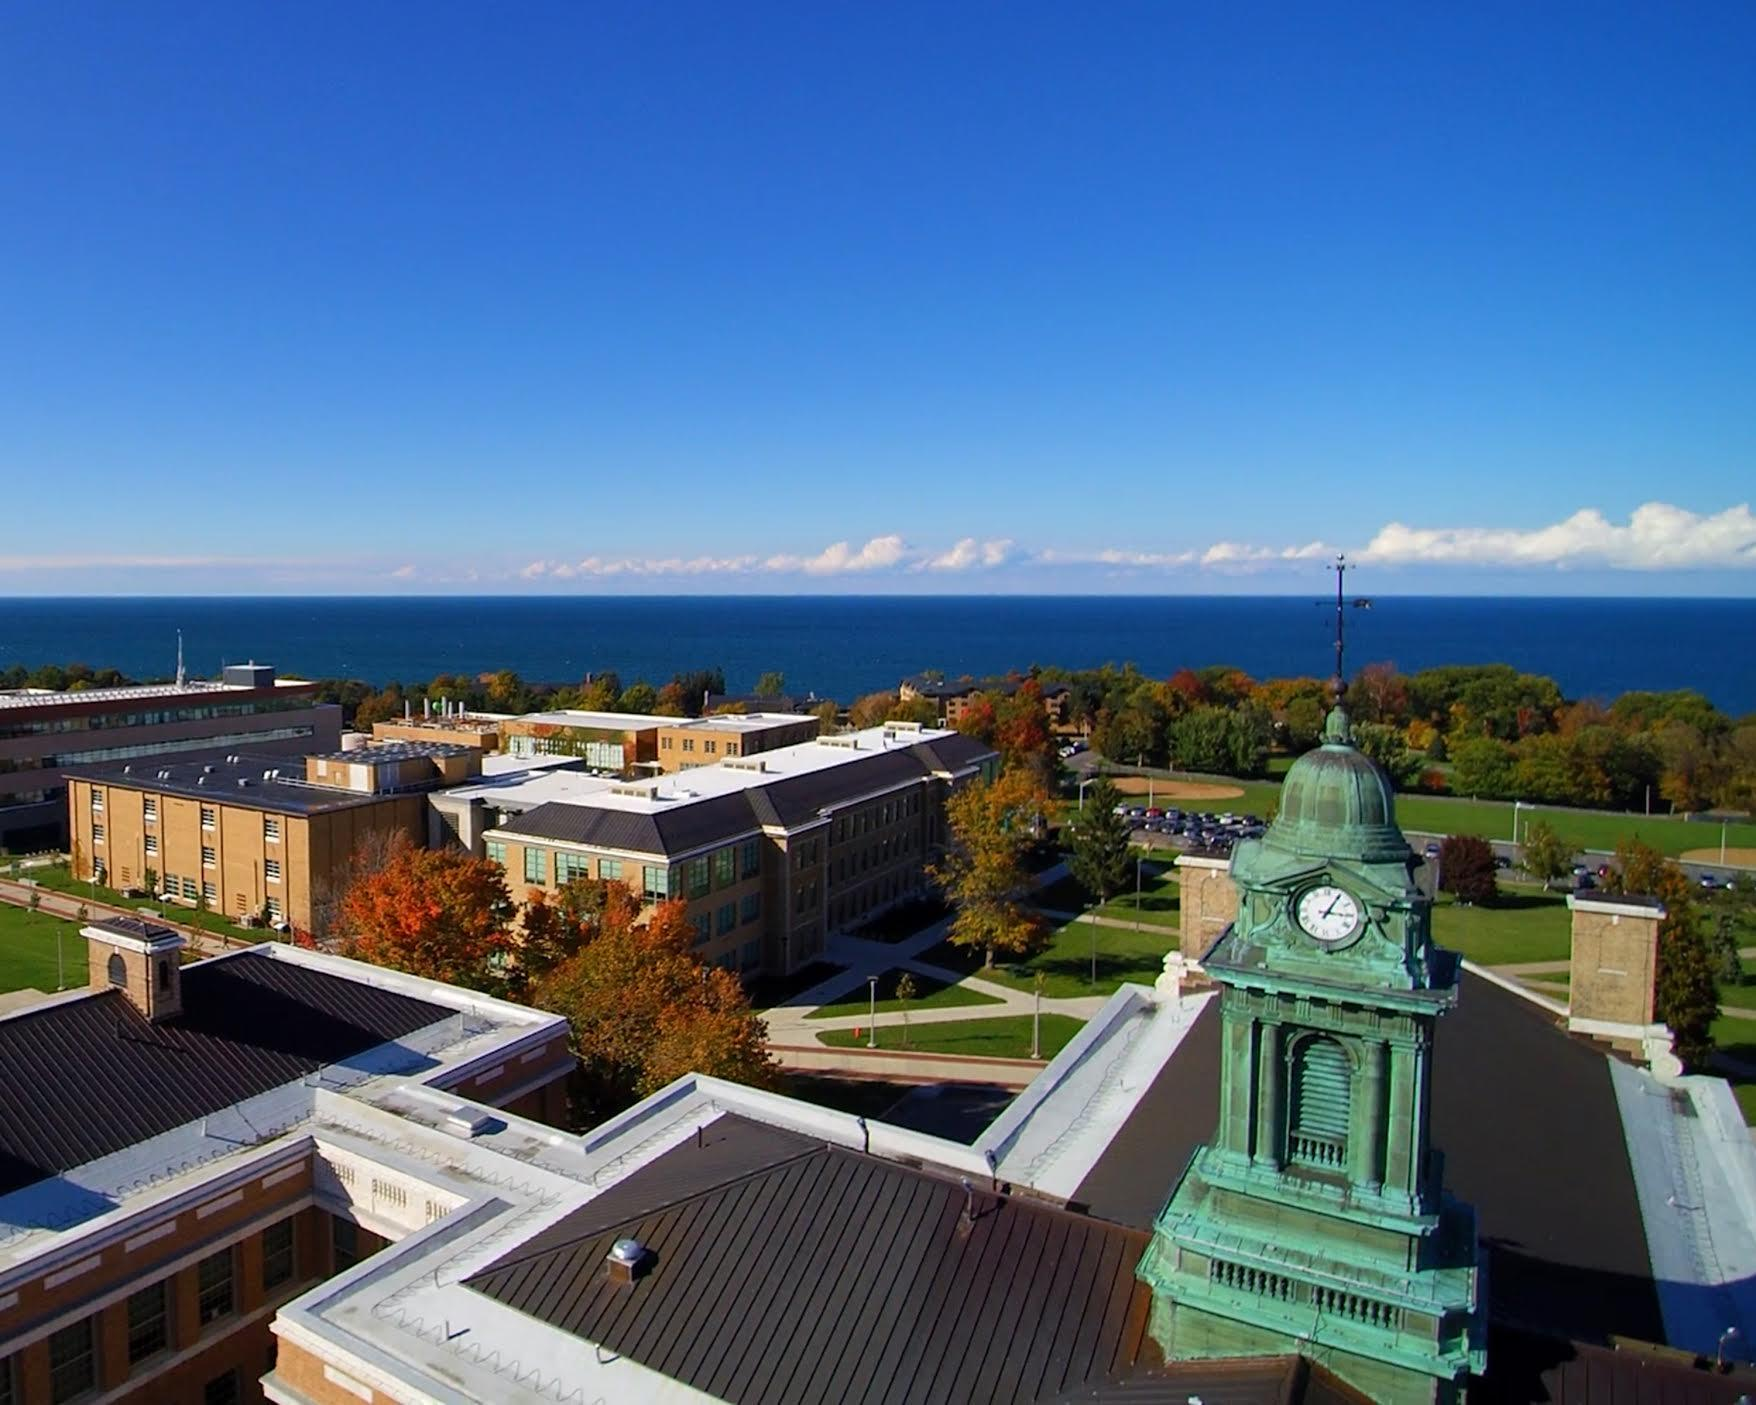 Aerial photo of SUNY Oswego campus overlooking Sheldon Hall